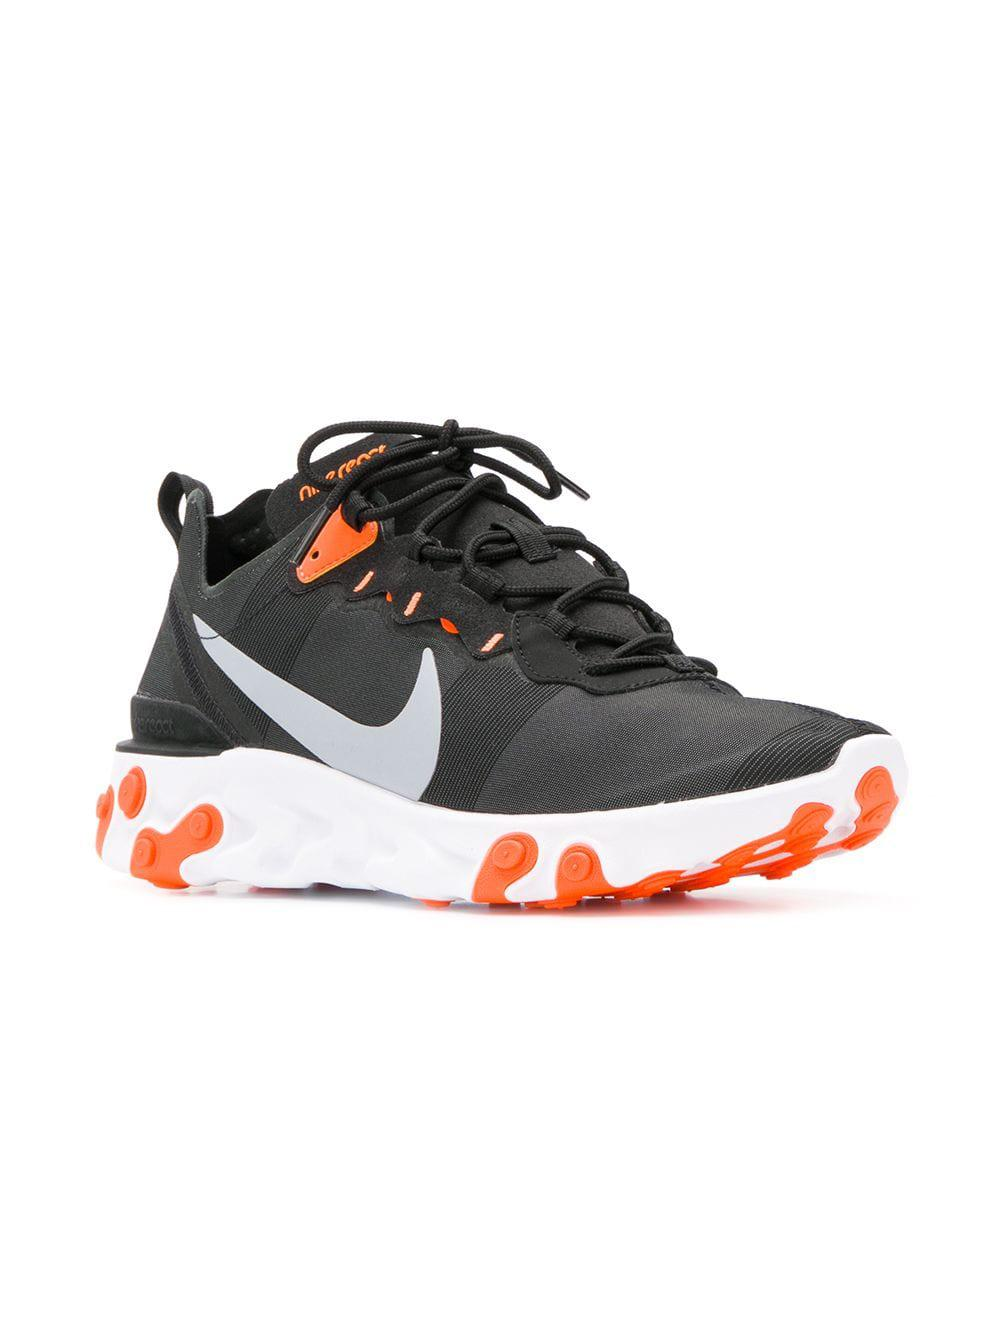 16d278912e09 Lyst - Nike React Element 55 Trainers in Black for Men